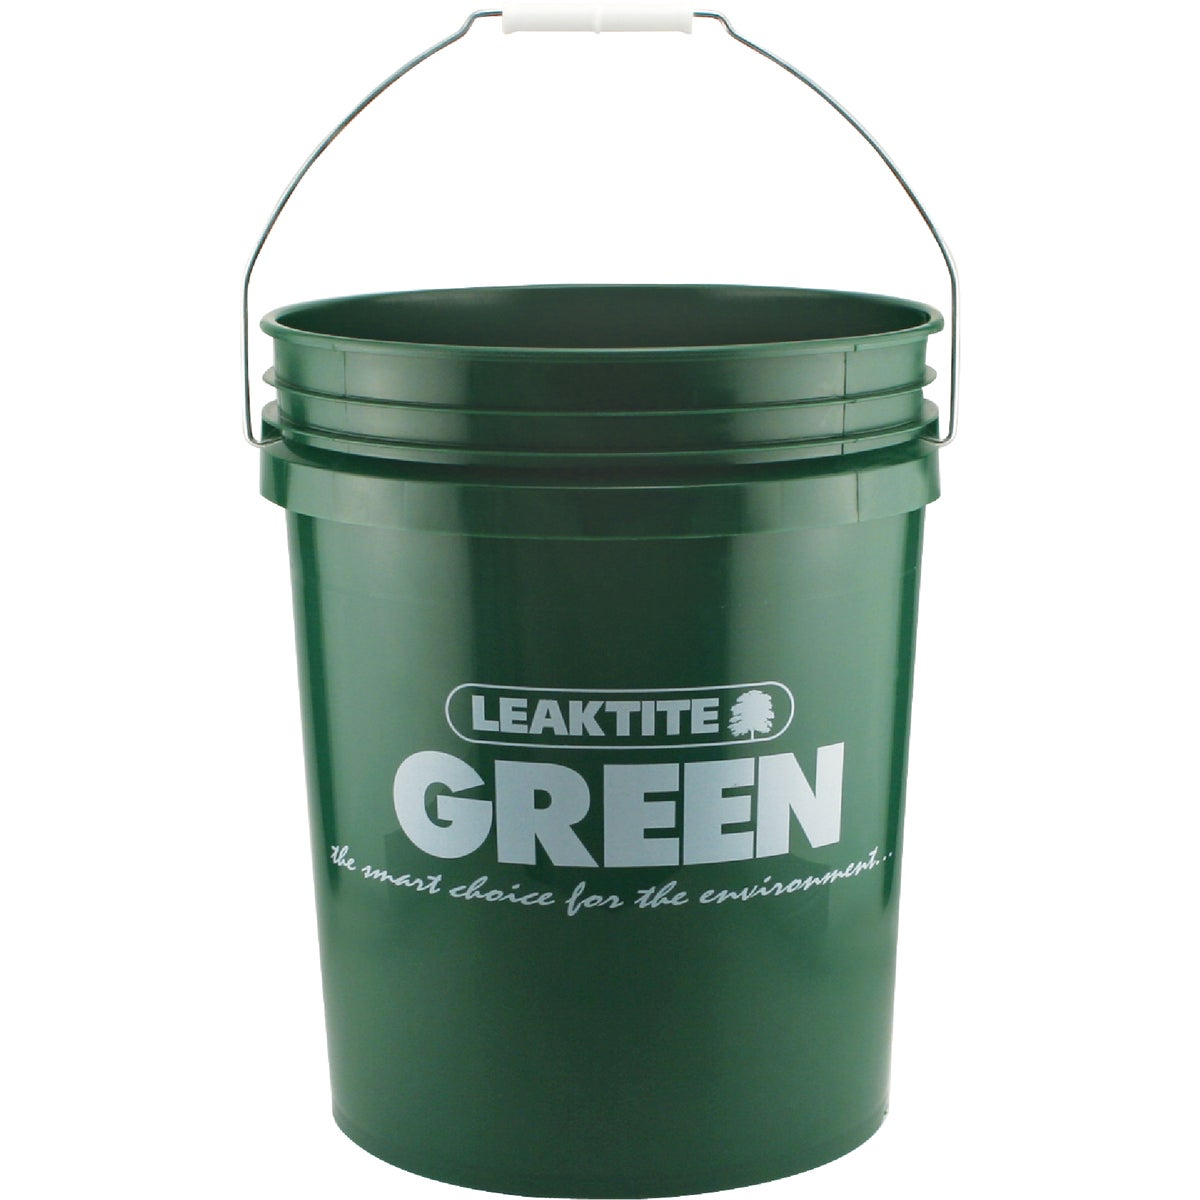 GREEN 5GAL PLASTIC PAIL - 5GLECG by Leaktite Corporation